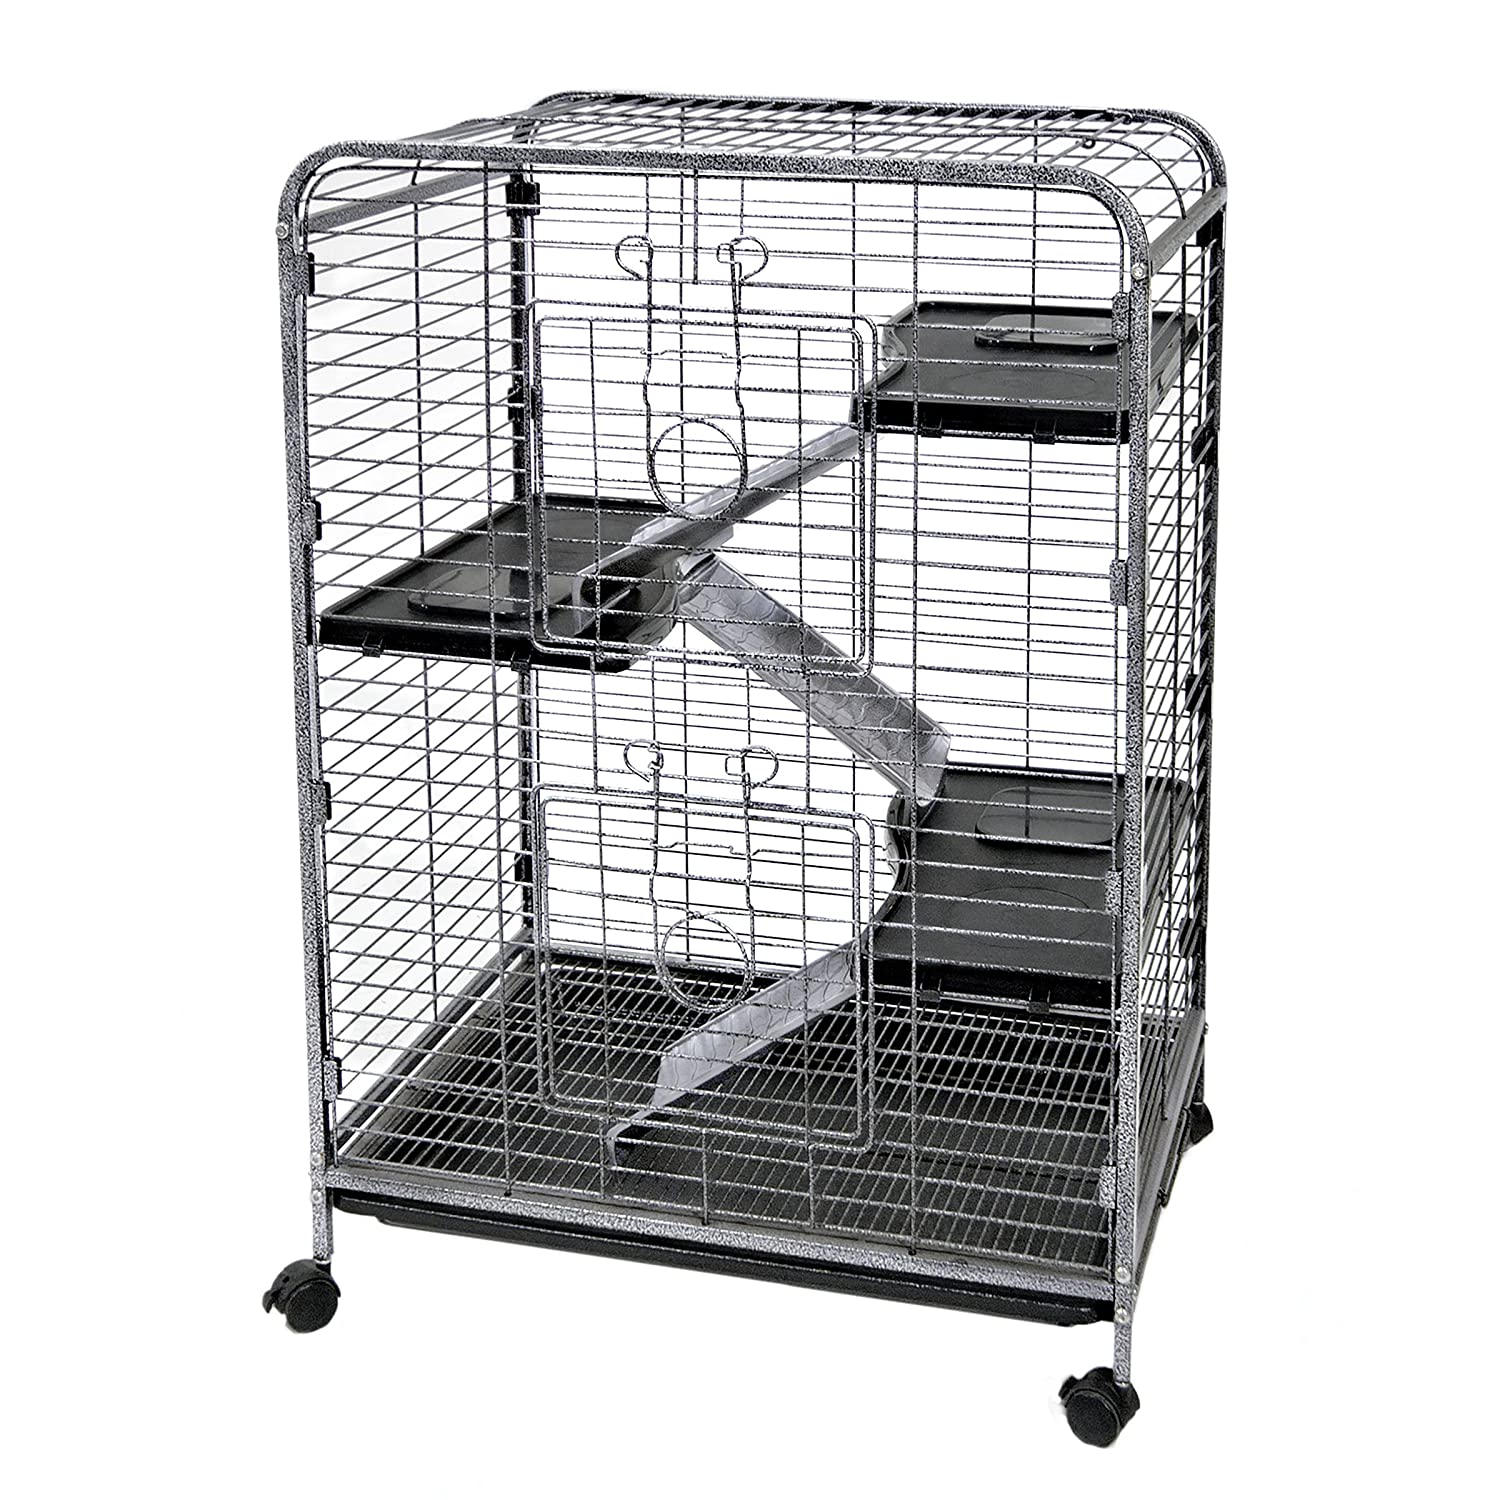 Ware Manufacturing WARE Indoor 4 Level Hutch Small Animal Cage